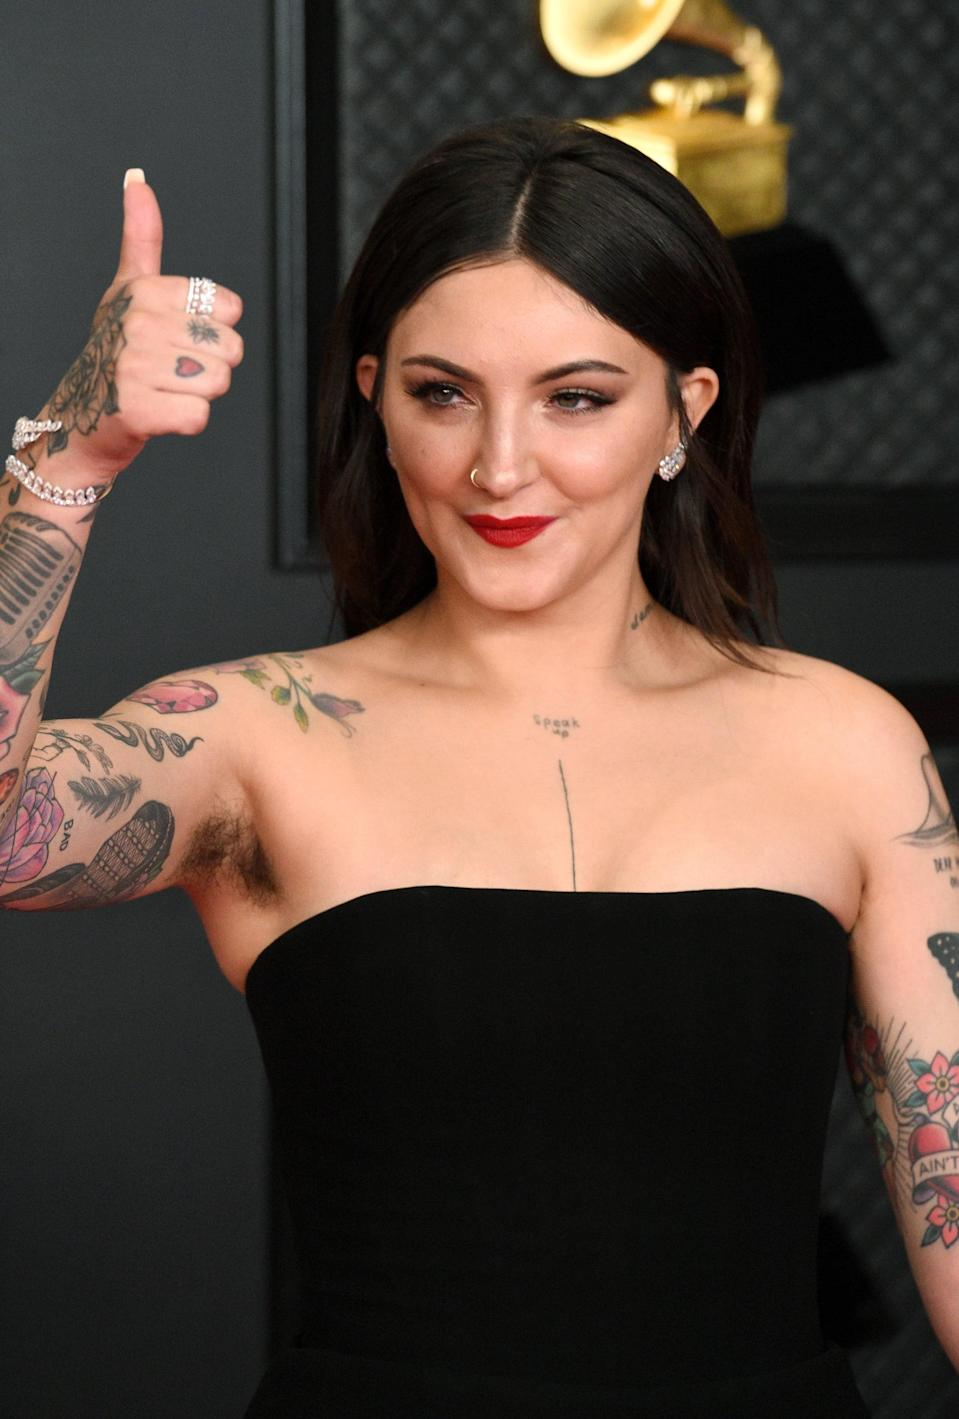 """<p>Michaels lives very much so by the """"you do you"""" philosophy, even if a majority of the world does not. Back in May of 2020 when she said """"social norms can eat an eggplant"""" and decided to <a href=""""https://www.popsugar.com/beauty/celebrities-normalizing-body-hair-47942188"""" class=""""link rapid-noclick-resp"""" rel=""""nofollow noopener"""" target=""""_blank"""" data-ylk=""""slk:stop shaving her armpits"""">stop shaving her armpits</a>, people had a lot to say about it - and they still do, but she doesn't let it bother her. </p> <p>""""I had taken a trip with some of my friends and [my underarm hair] had started to grow out and when I shaved it, I didn't feel like myself; it was really strange,"""" said Michaels. After talking to her boyfriend about it, she decided to stop shaving the hair altogether and has stuck with it ever since. """"I was like, so long as my boyfriend still wants to f*ck me, I'm cool,"""" she said.</p> <div class=""""pullquote-container""""><blockquote class=""""pullquote"""">There's something really liberating about doing the things that people tell you not to do. If it's something as simple as growing my armpit hair out, I'm down for it.</blockquote></div> <p>The reason anyone decides to remove or not to remove their body hair is a personal choice, but for Michaels it's partially about just doing whatever feels right and partially about sticking it to haters. """"There's something really liberating about doing the things that people tell you not to do and I get a kick out of that,"""" she said. """"If it's something as simple as growing my armpit hair out, I'm down for it. You'd be surprised at how many men comment on my social media still being like 'That's disgusting. You should shave it,' and it's like, why do you feel like you can comment on my body?""""</p>"""